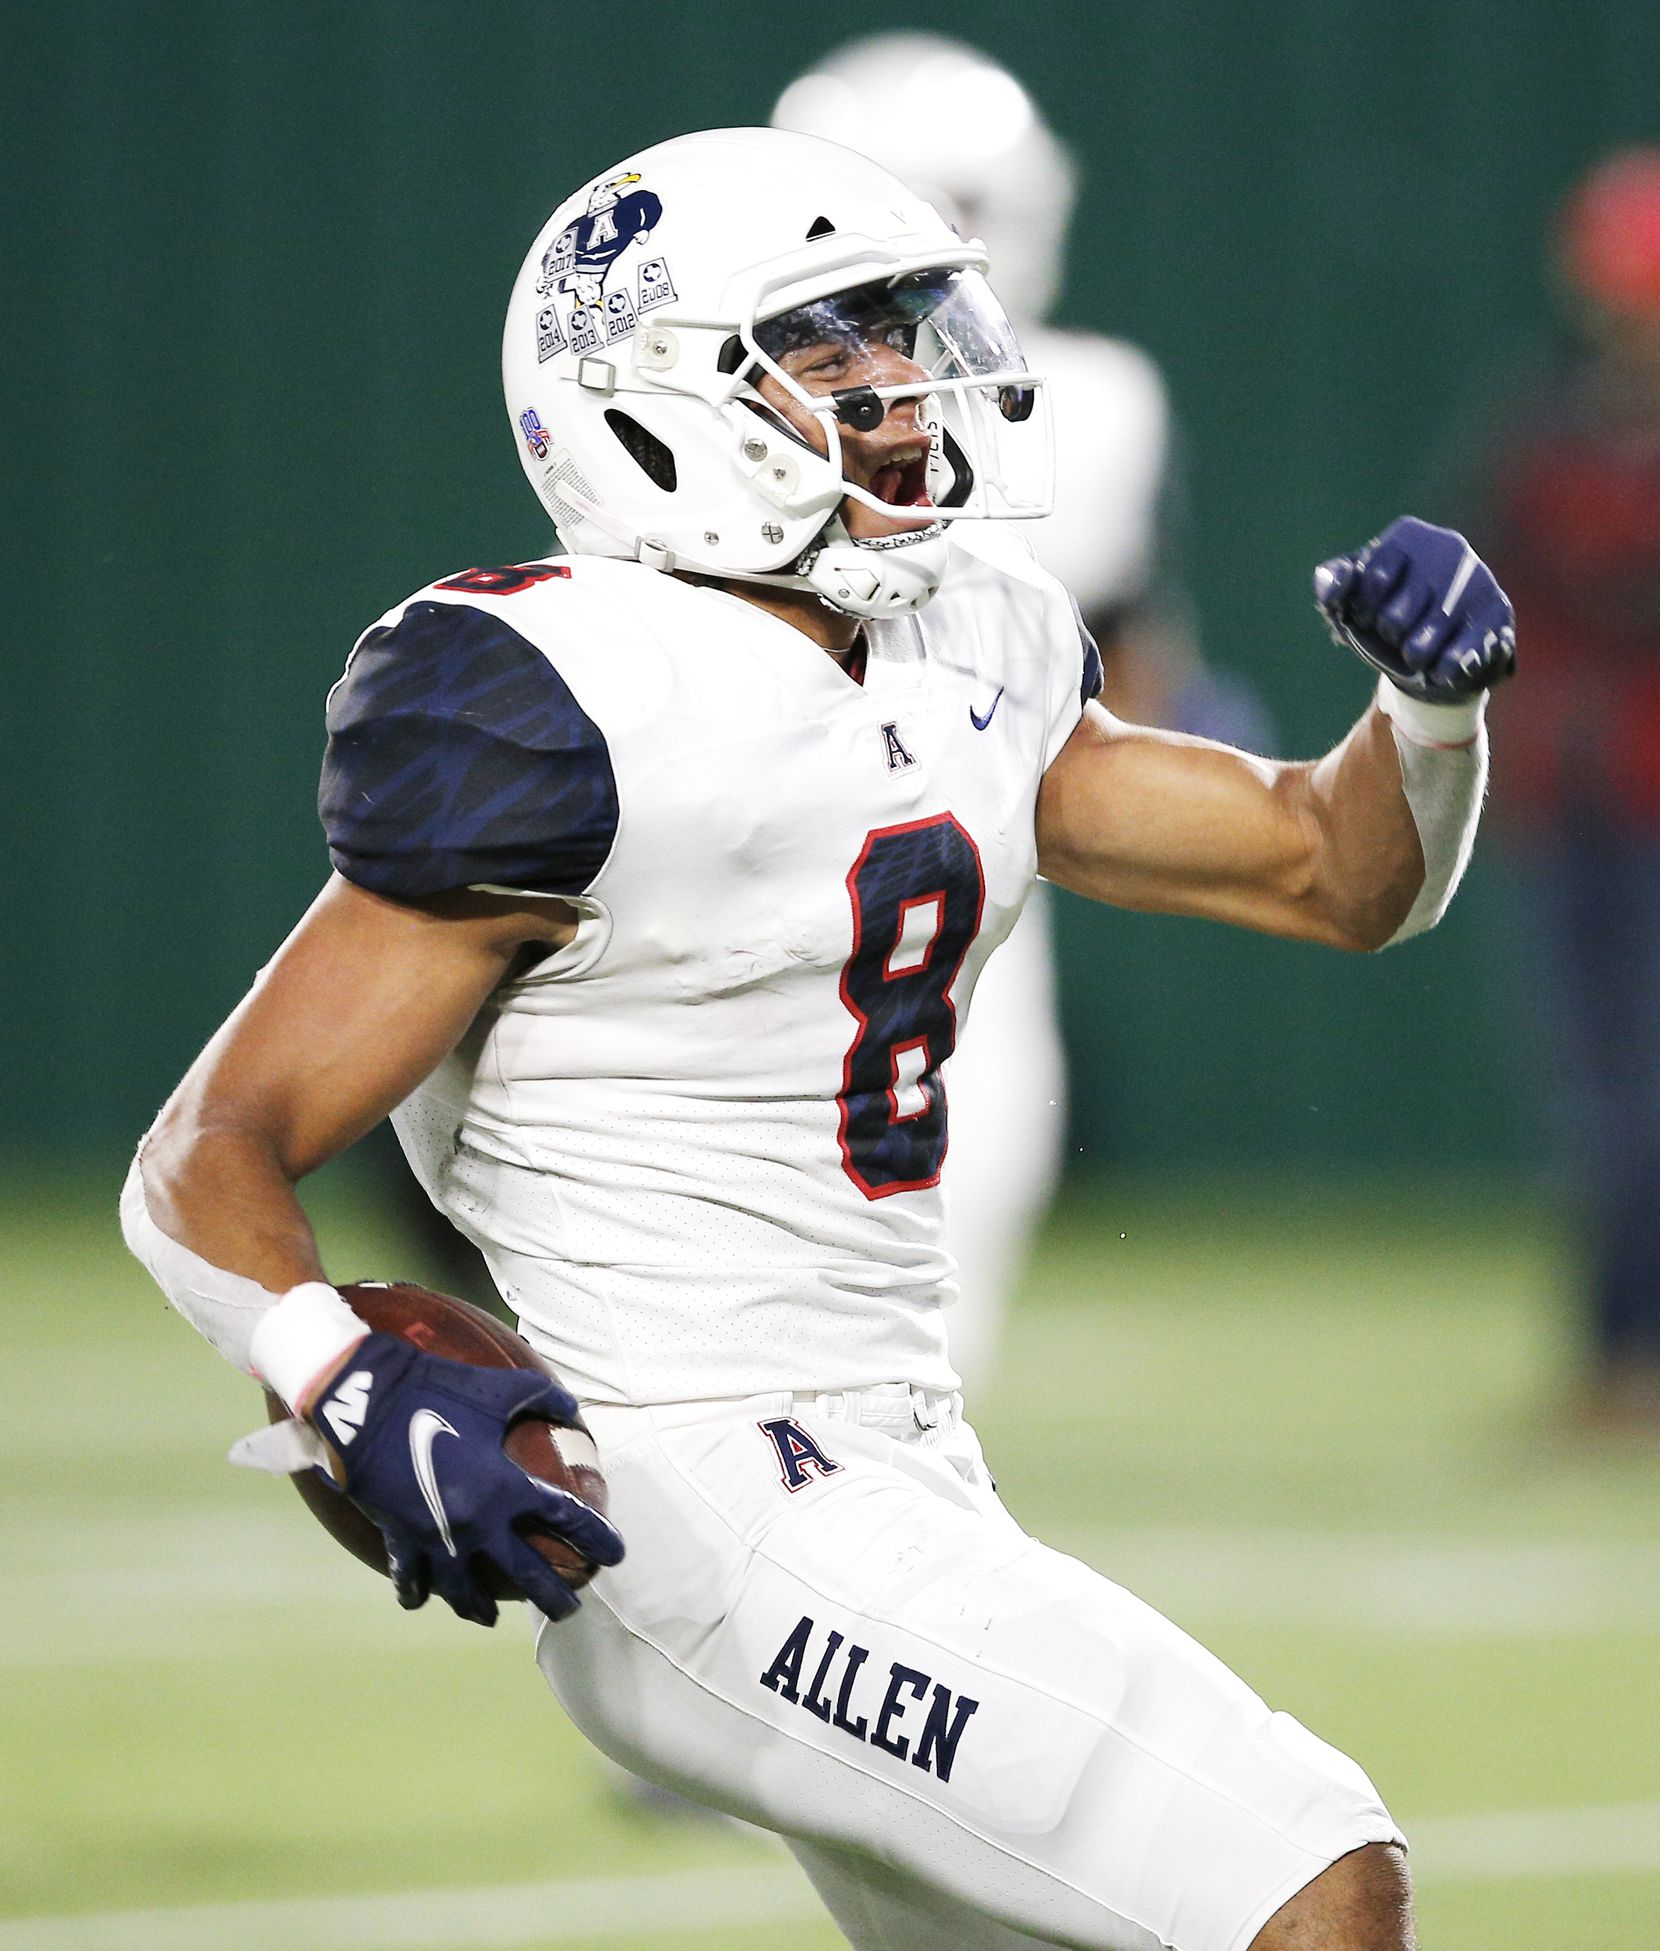 Allen senior wide receiver Blaine Green (8) celebrates scoring a touchdown during the first half of a high school Class 6A Division I Region I semifinal football game against Euless Trinity at Globe Life Park in Arlington, Saturday, December 26, 2020. (Brandon Wade/Special Contributor)